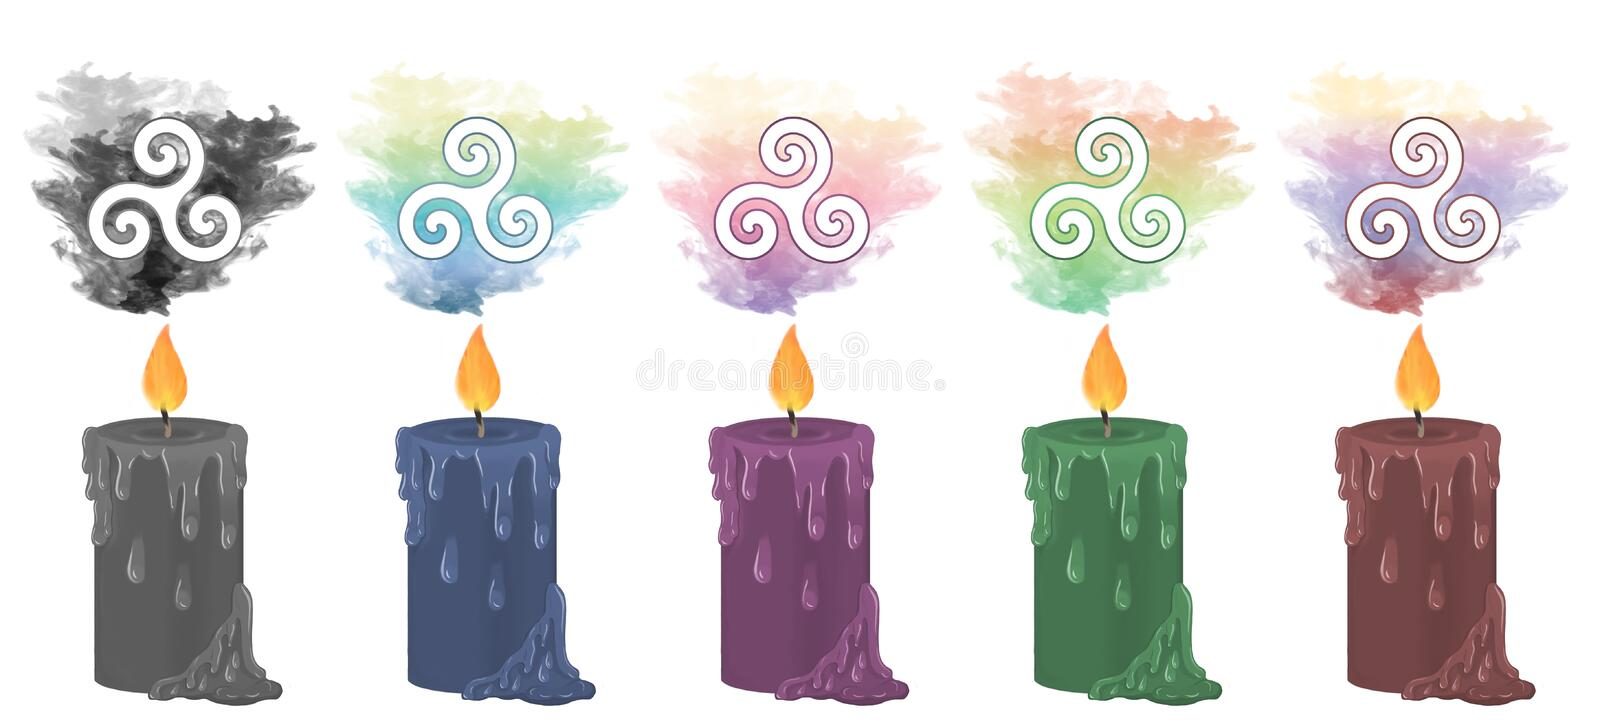 Bougies en spirale triples de symbole illustration de vecteur